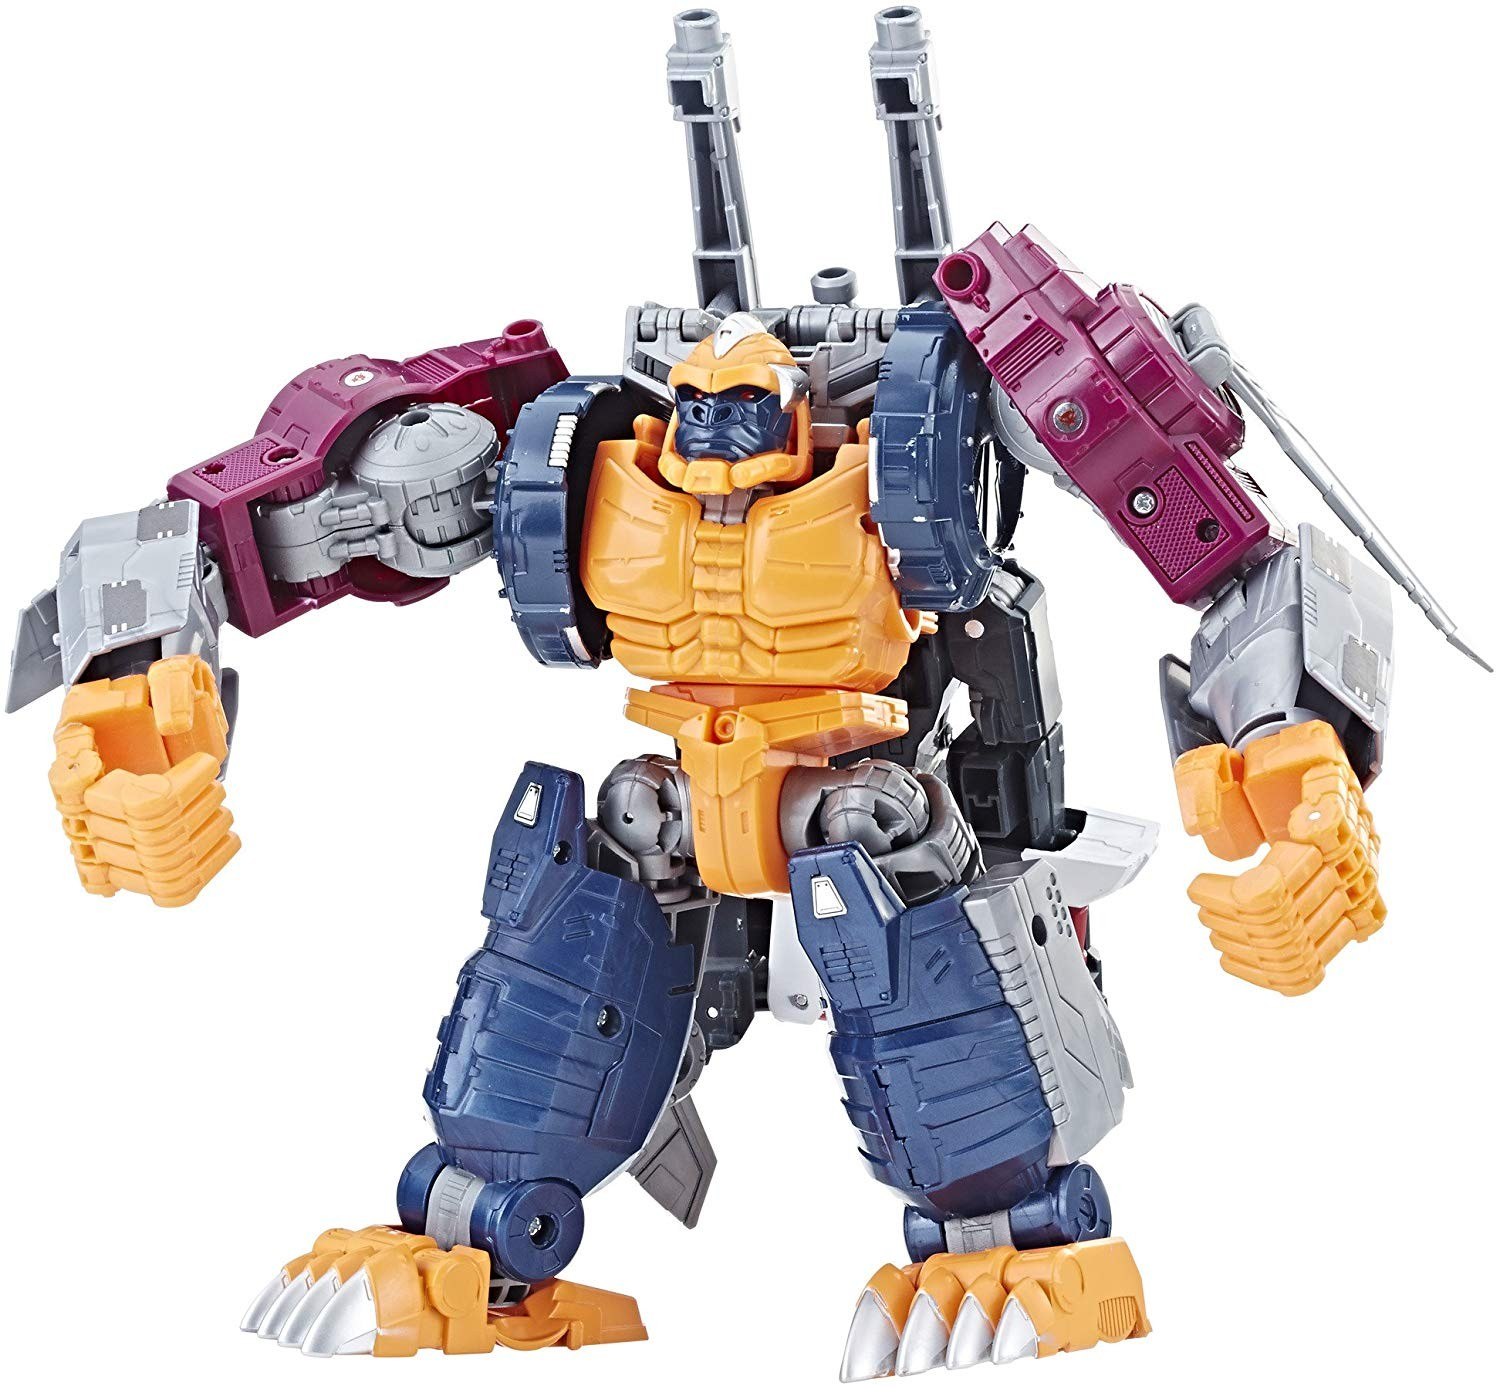 Transformers News: Transformers Power of the Primes Optimal Optimus now in stock at Hasbro Toy Shop and at Amazon.com